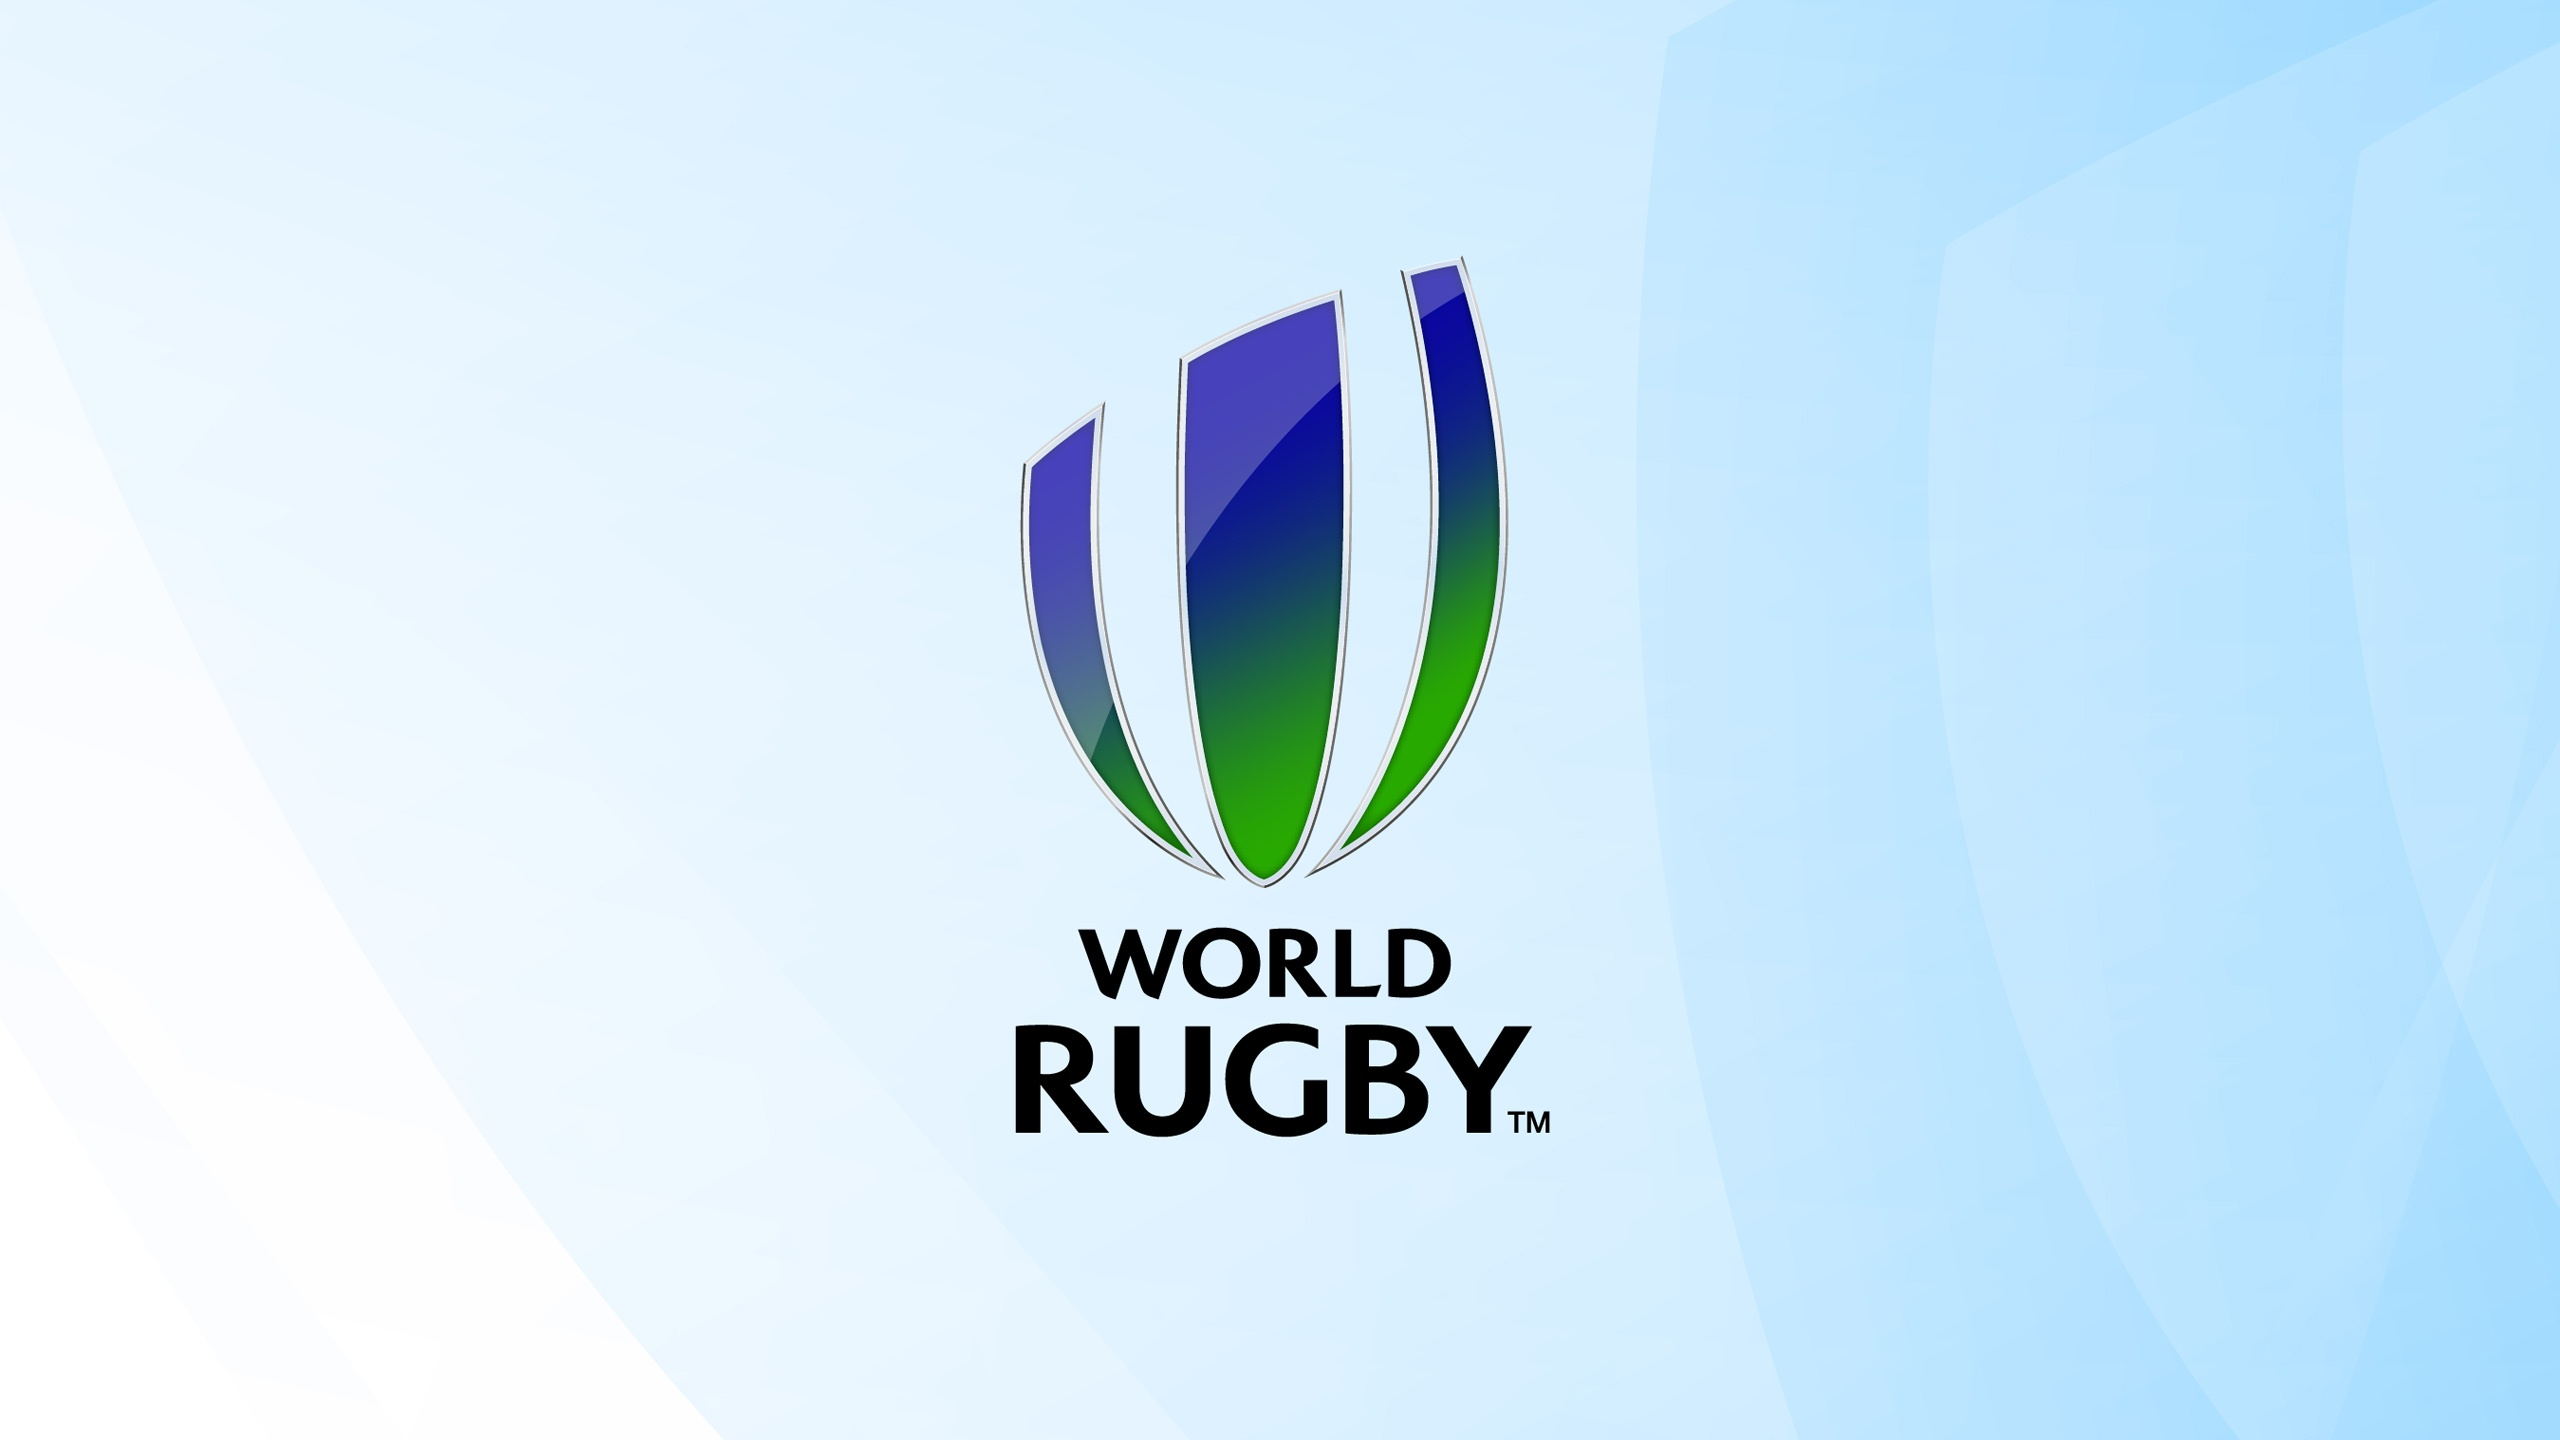 World Rugby Wallpapers In Jpg Format For Free Download